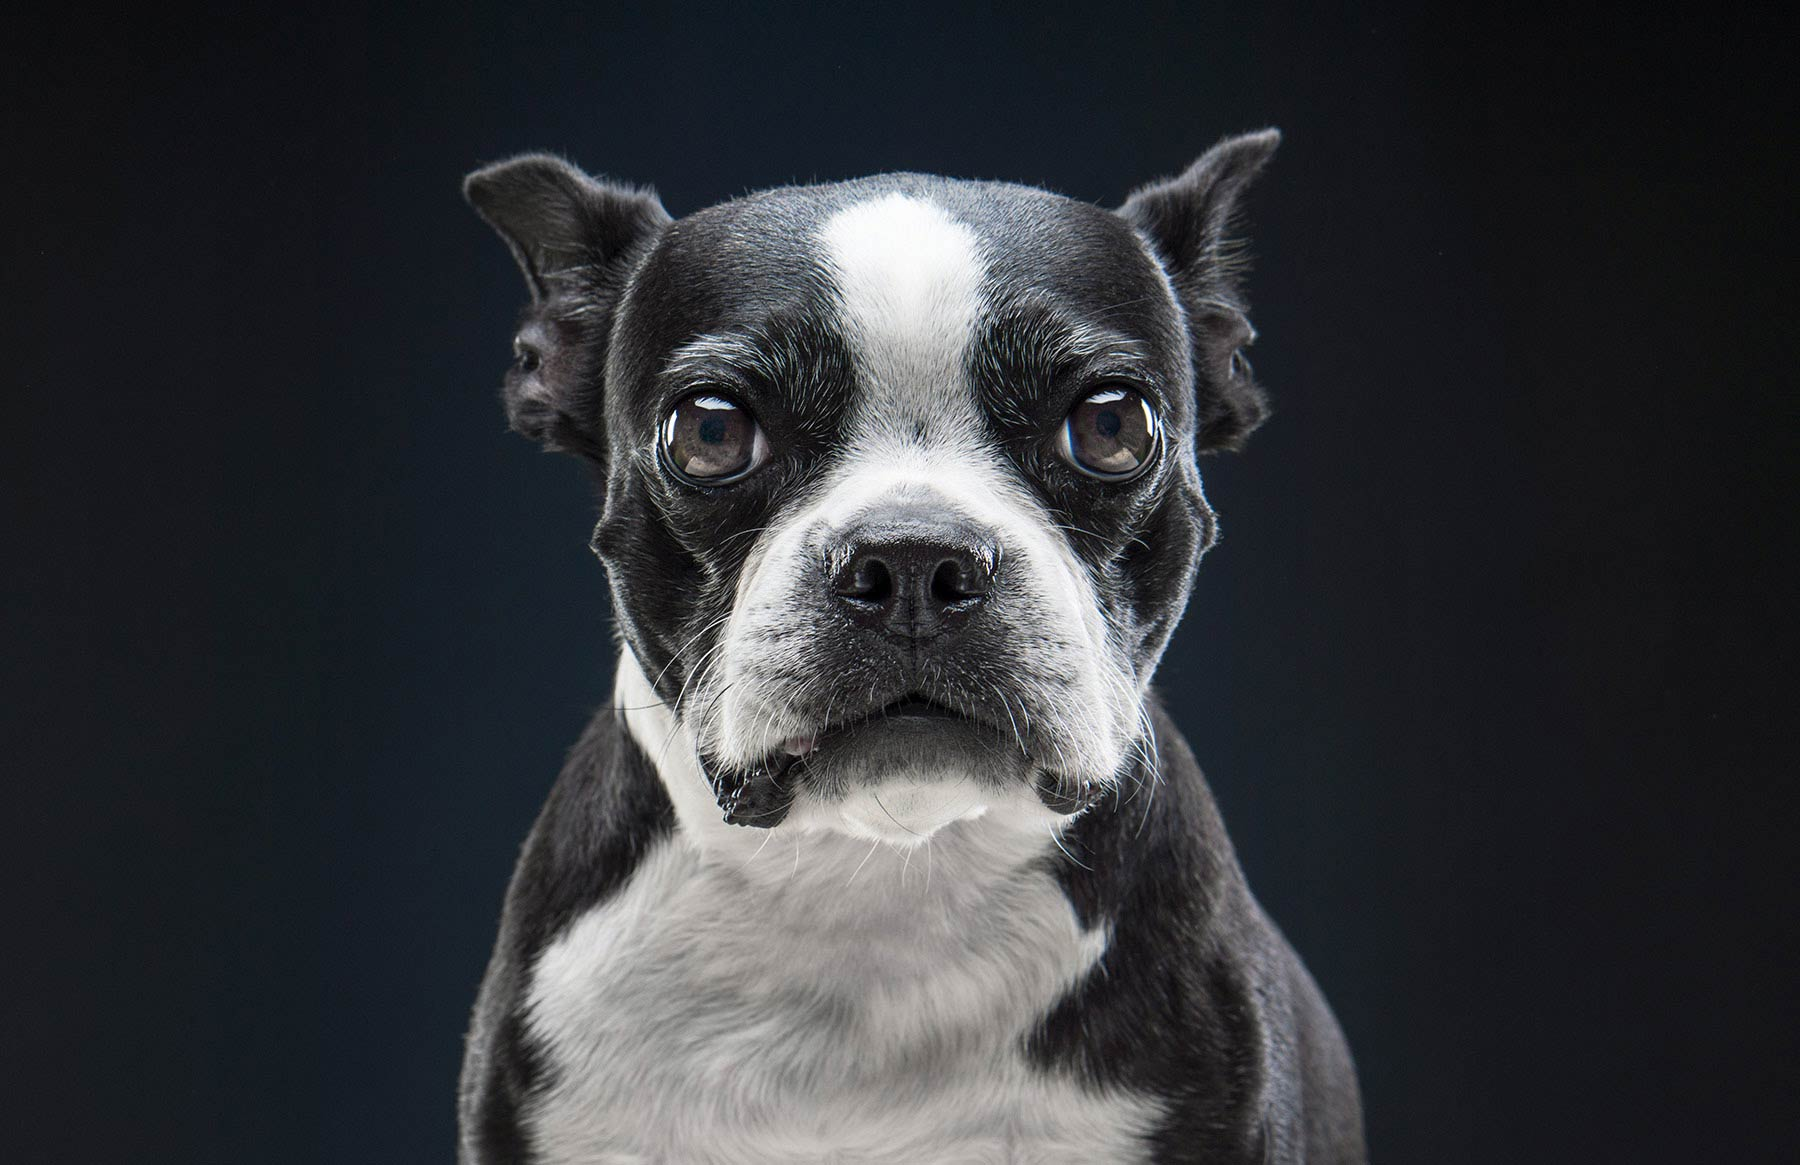 A-studio-portrait-of-a-Boston-Terrier-against-a-black-background